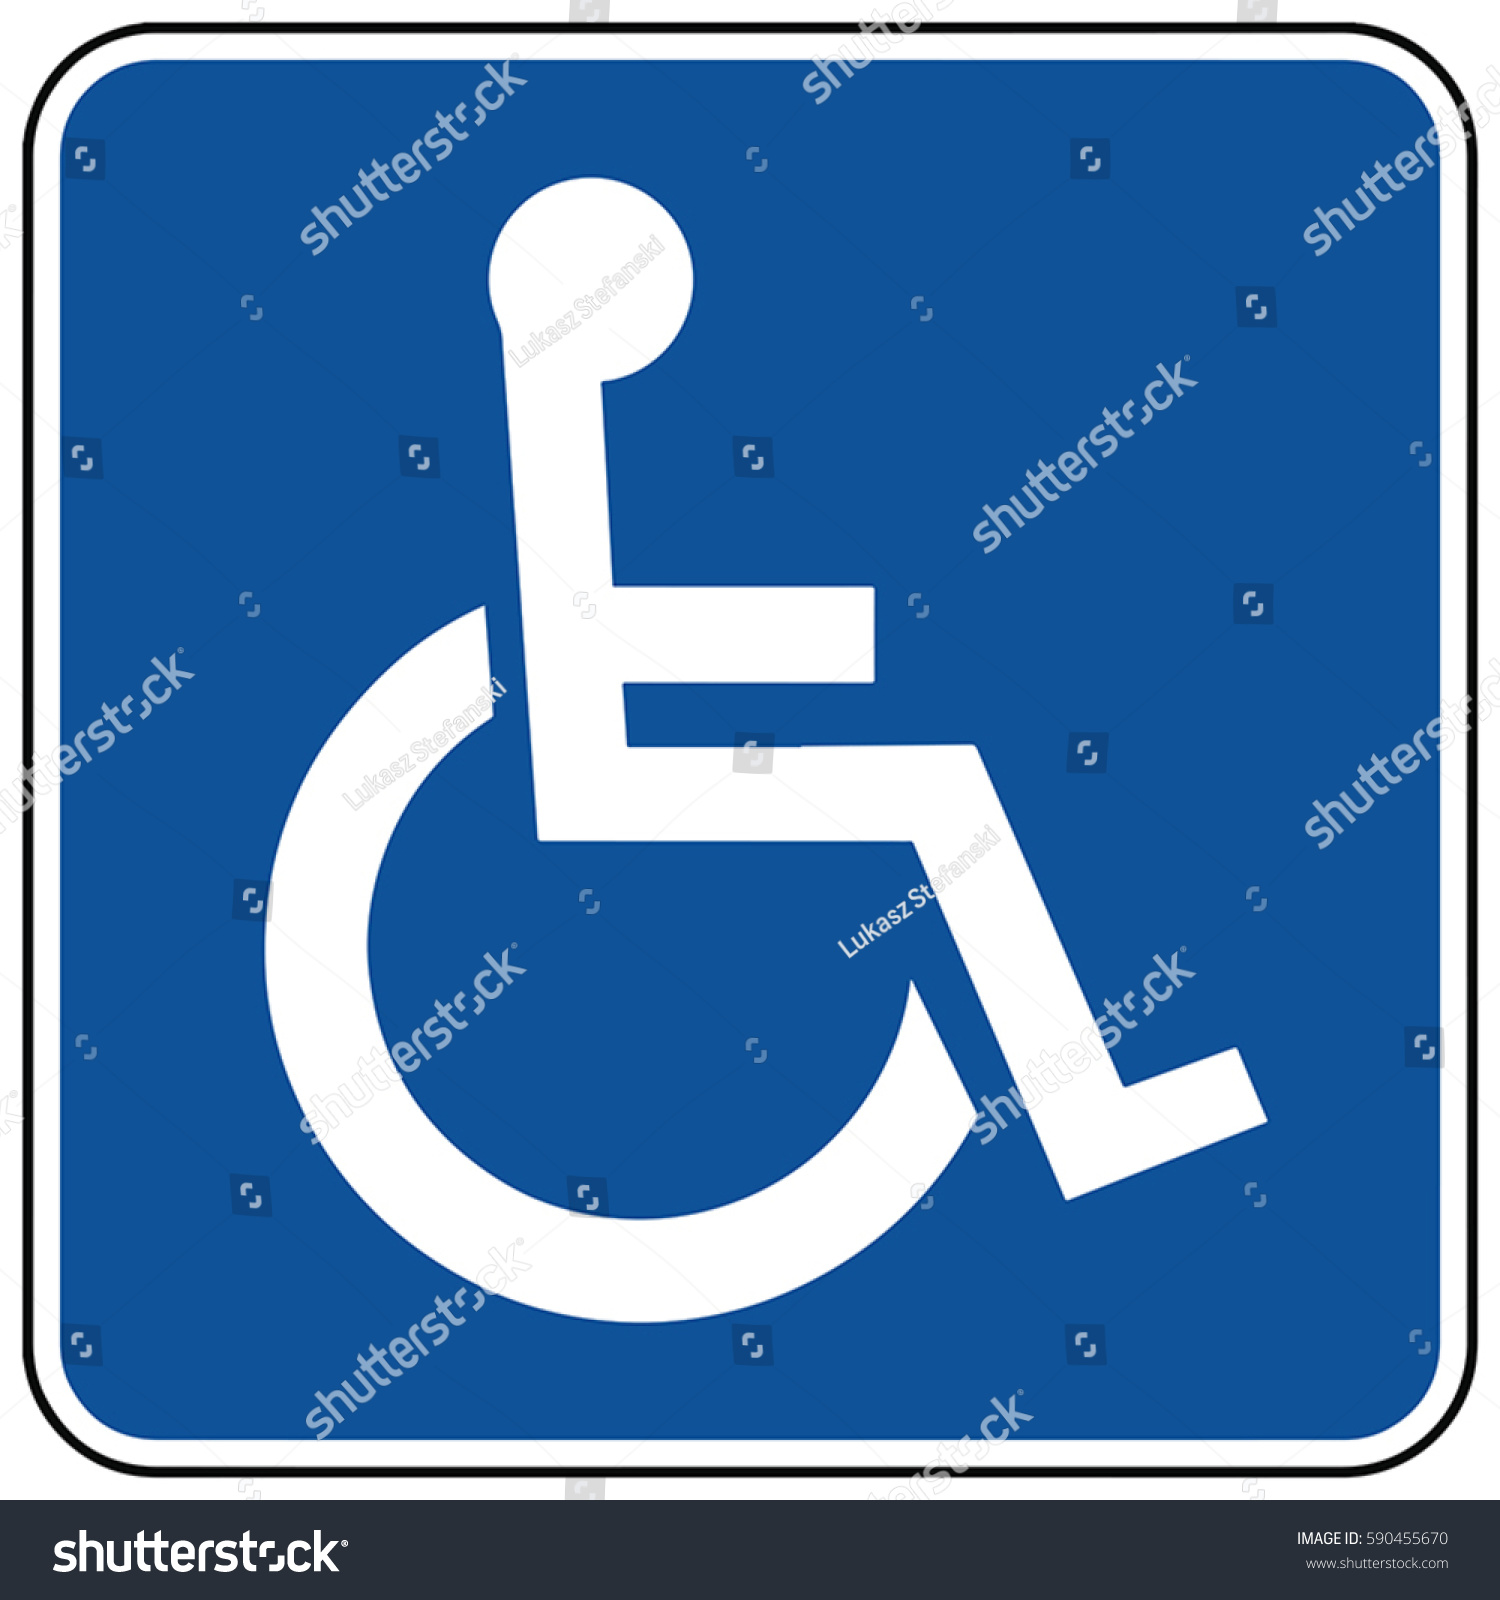 Toilet symbol unicode disabled accessible facilities stock vector toilet symbol in unicode disabled accessible facilities vector format buycottarizona Choice Image